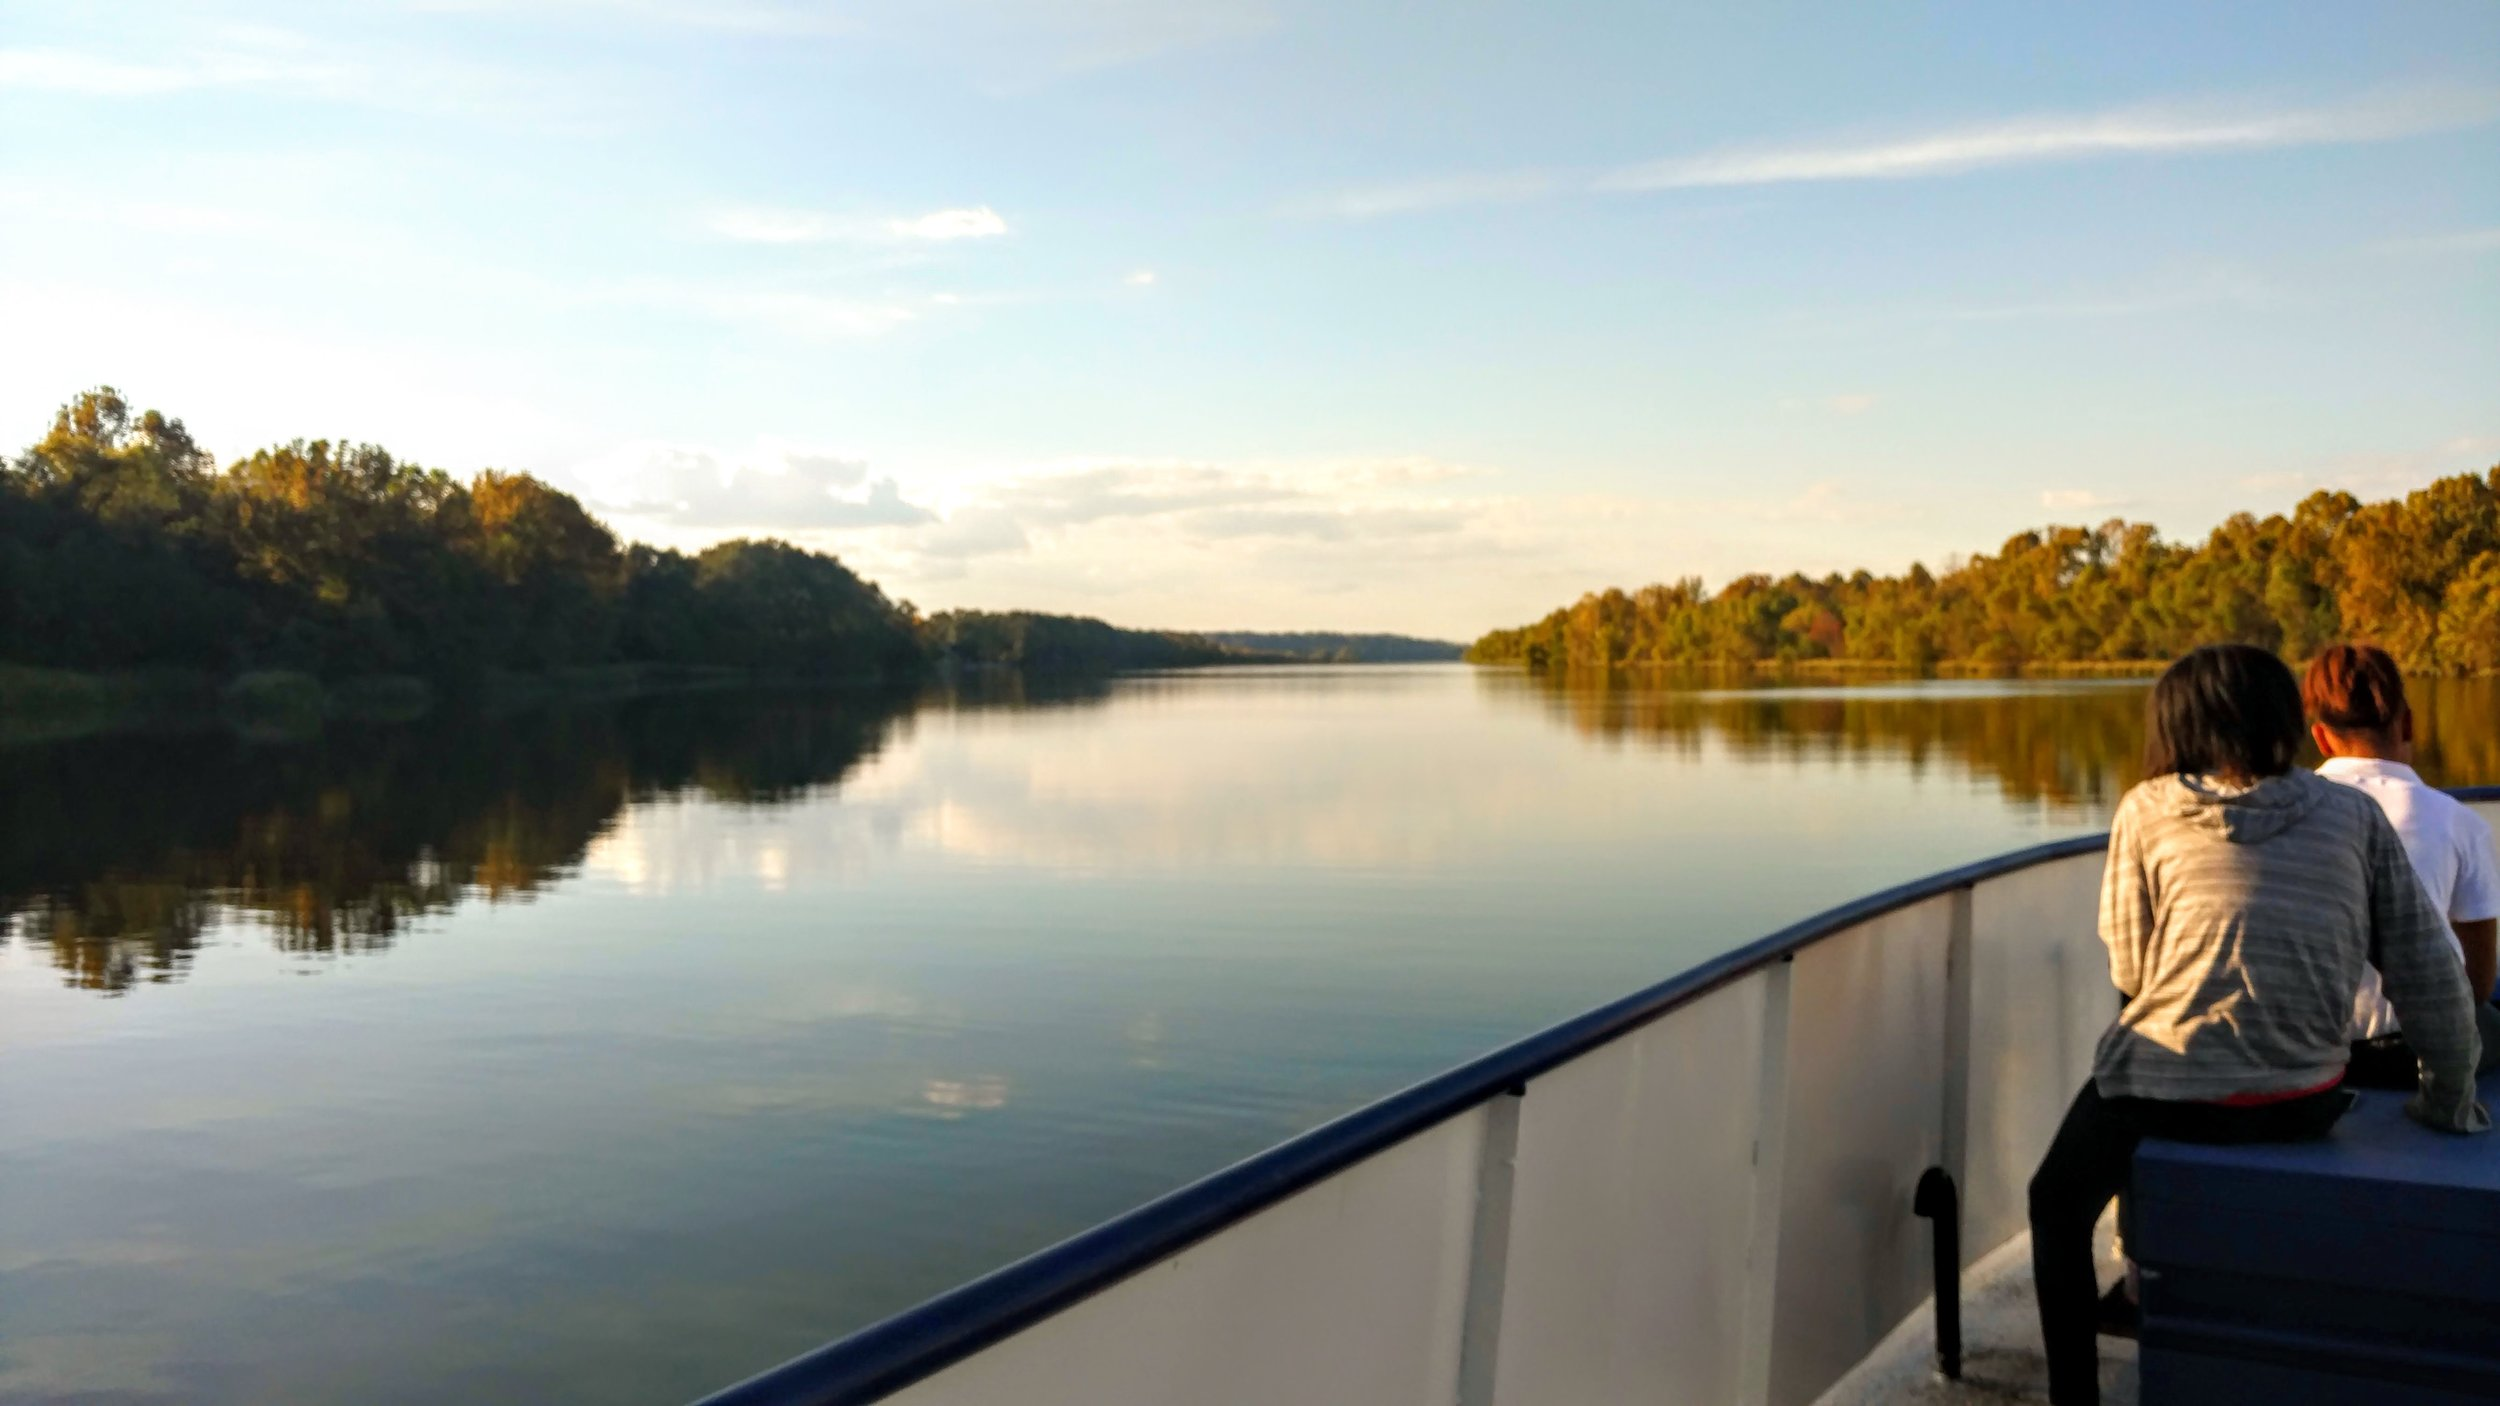 The Alabama River as seen from the Gee's Bend Ferry, 2016, copyright Stuart Moores Textiles